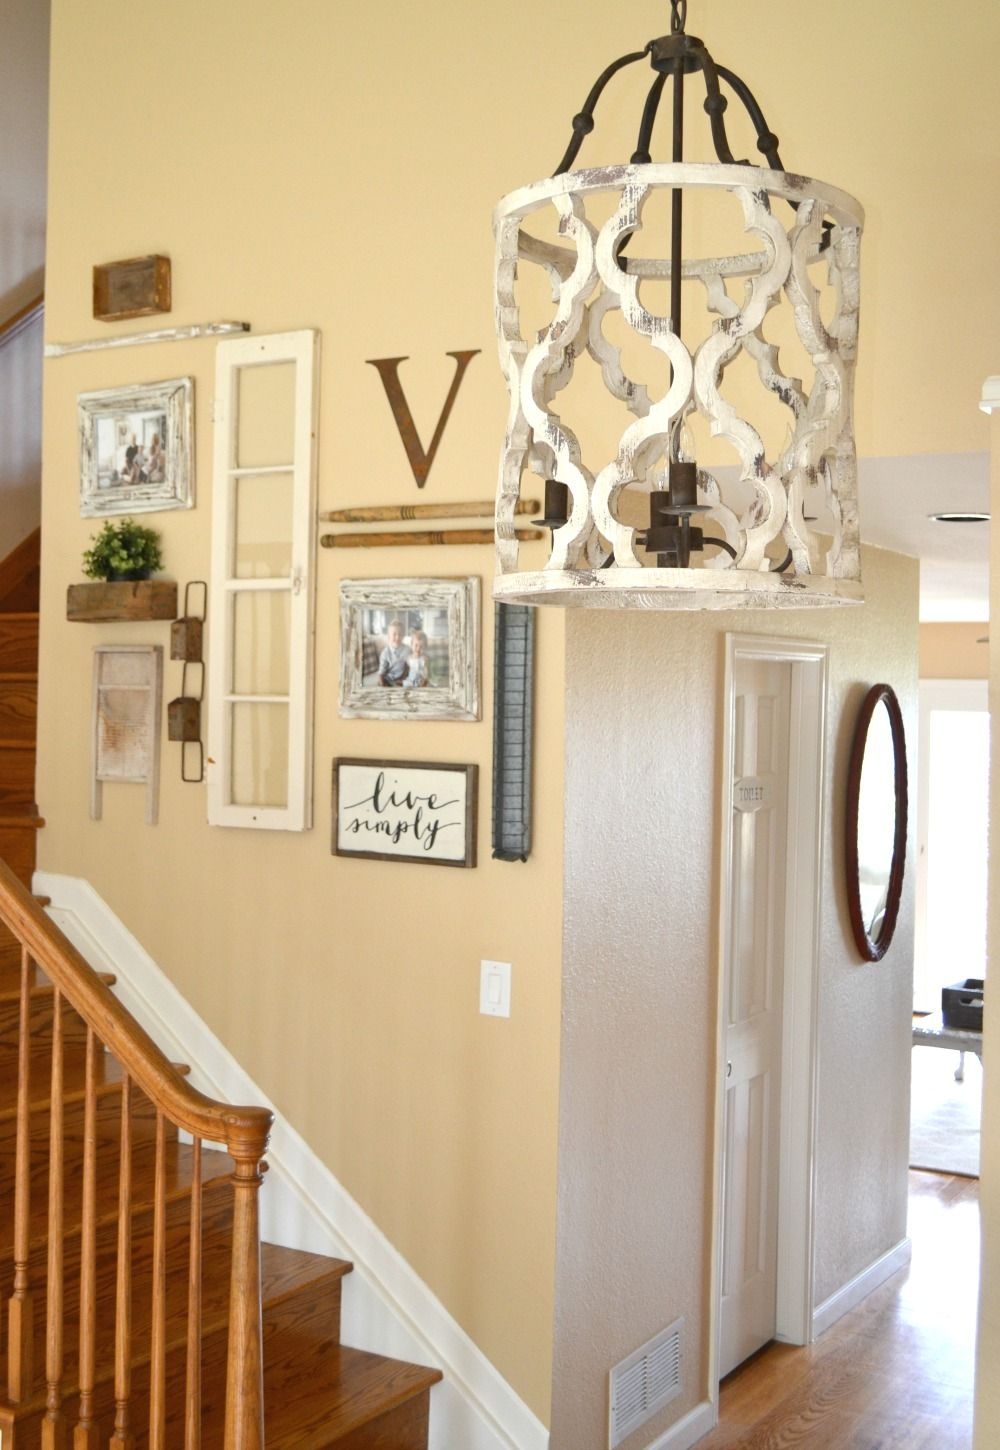 Updated Entryway The Prettiest Chandelier Sarah Joy Rustic